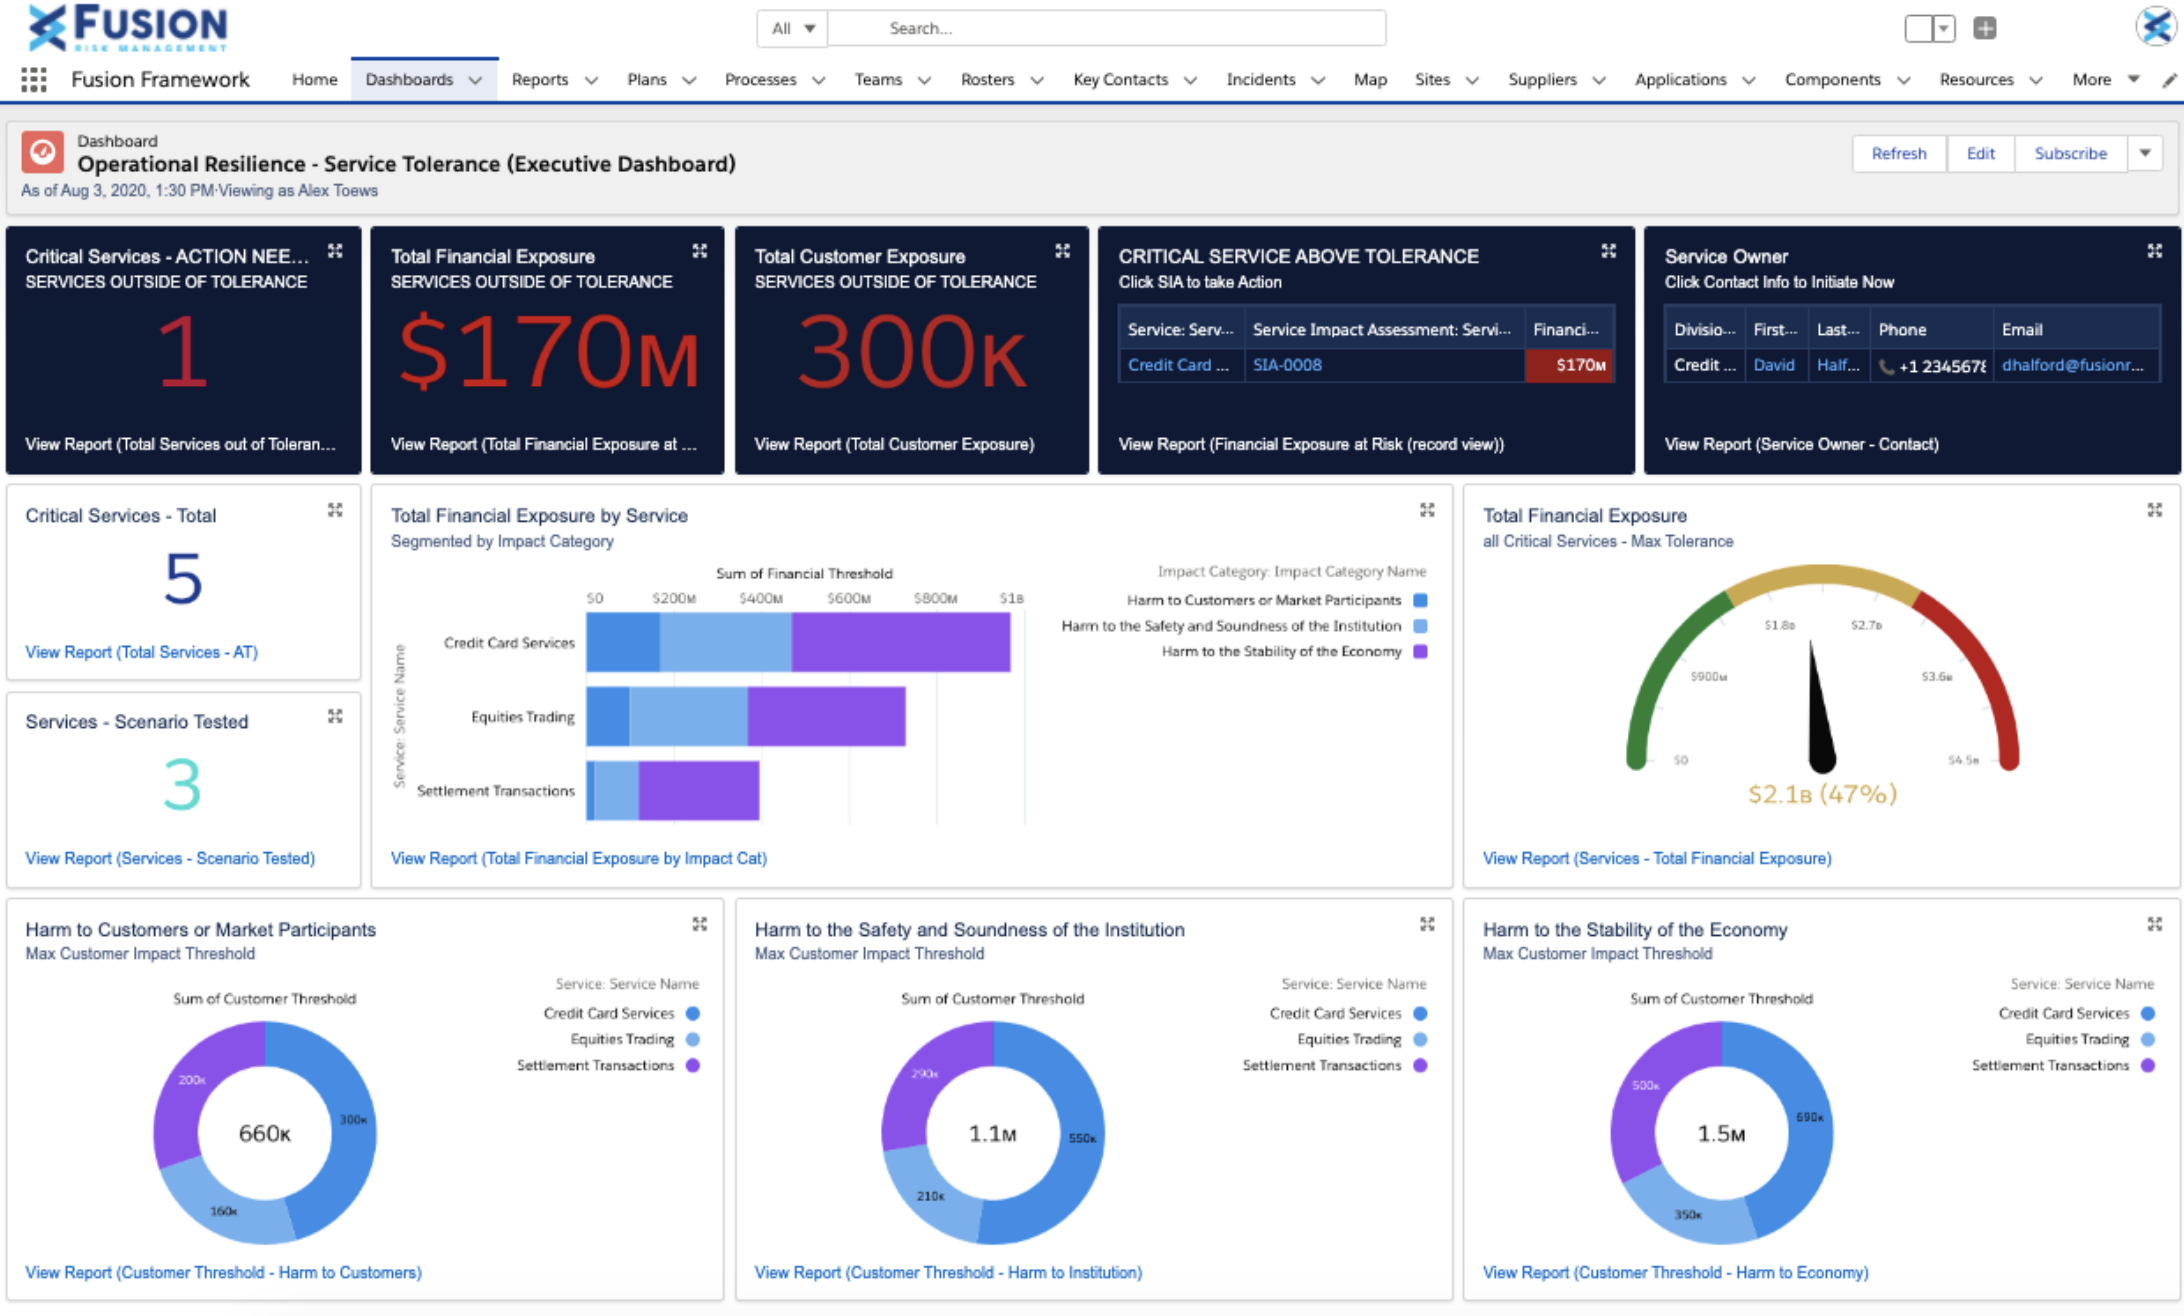 Operational Resilience - Executive Dashboard View